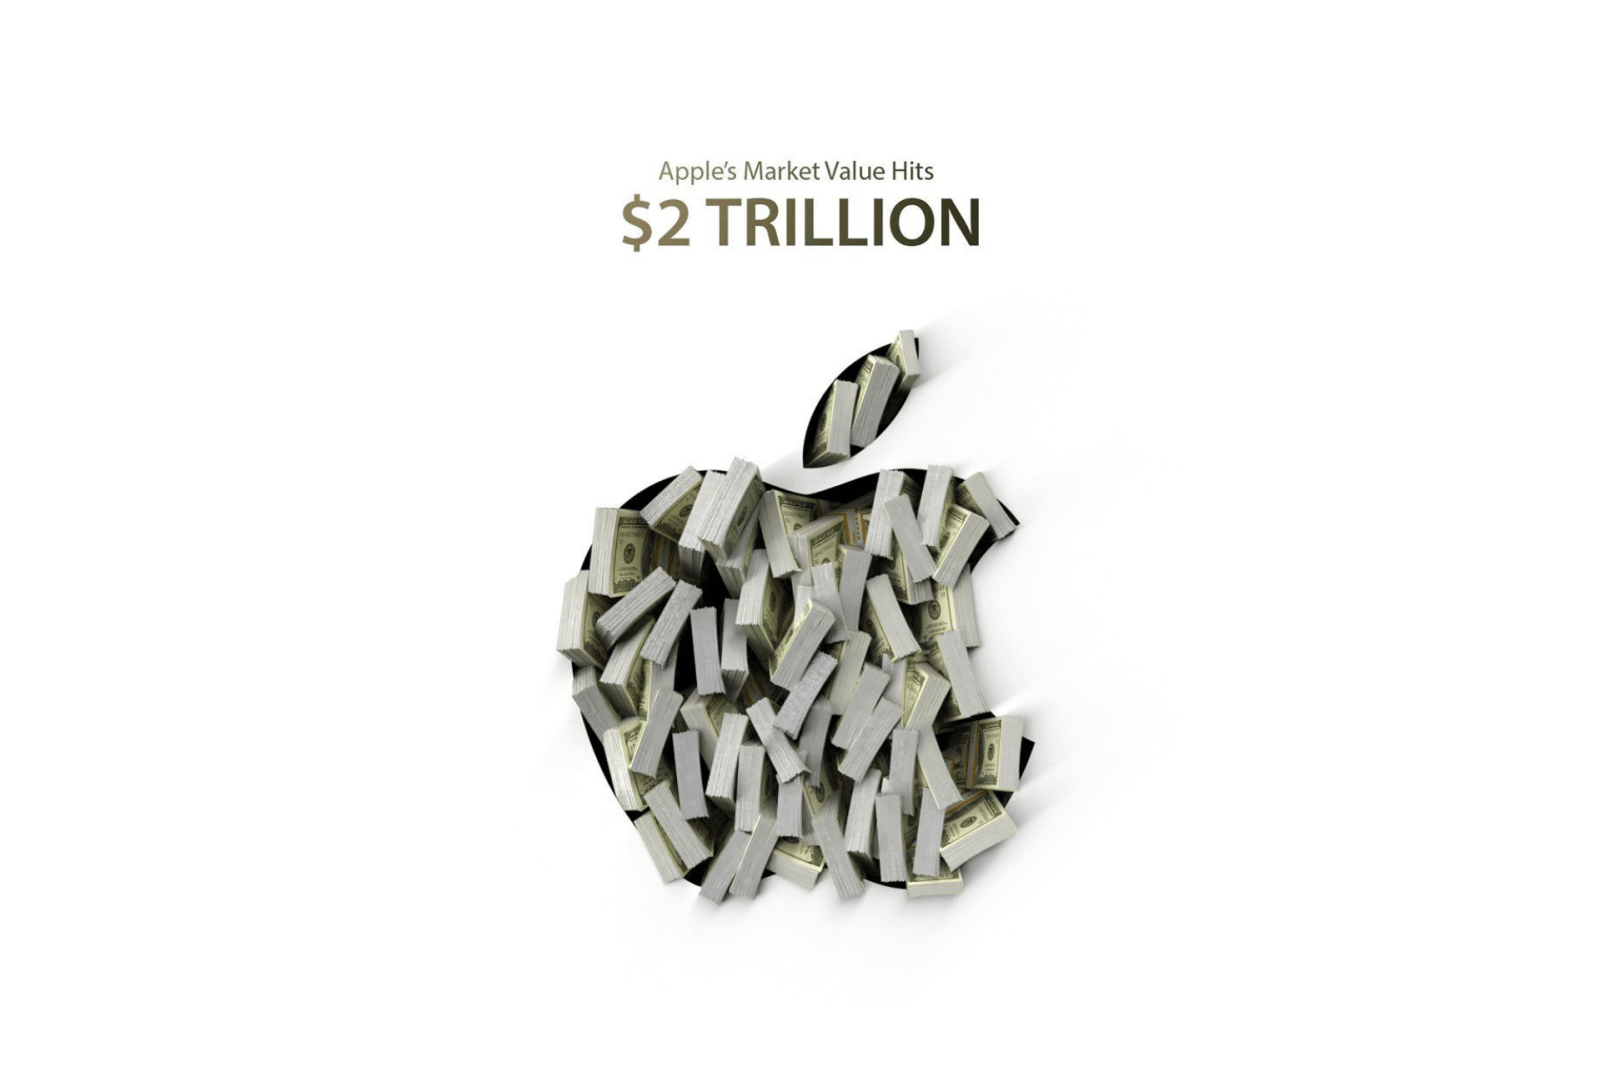 Apple Becomes First U.S. Public Company to Hits $2 Trillion Market Value